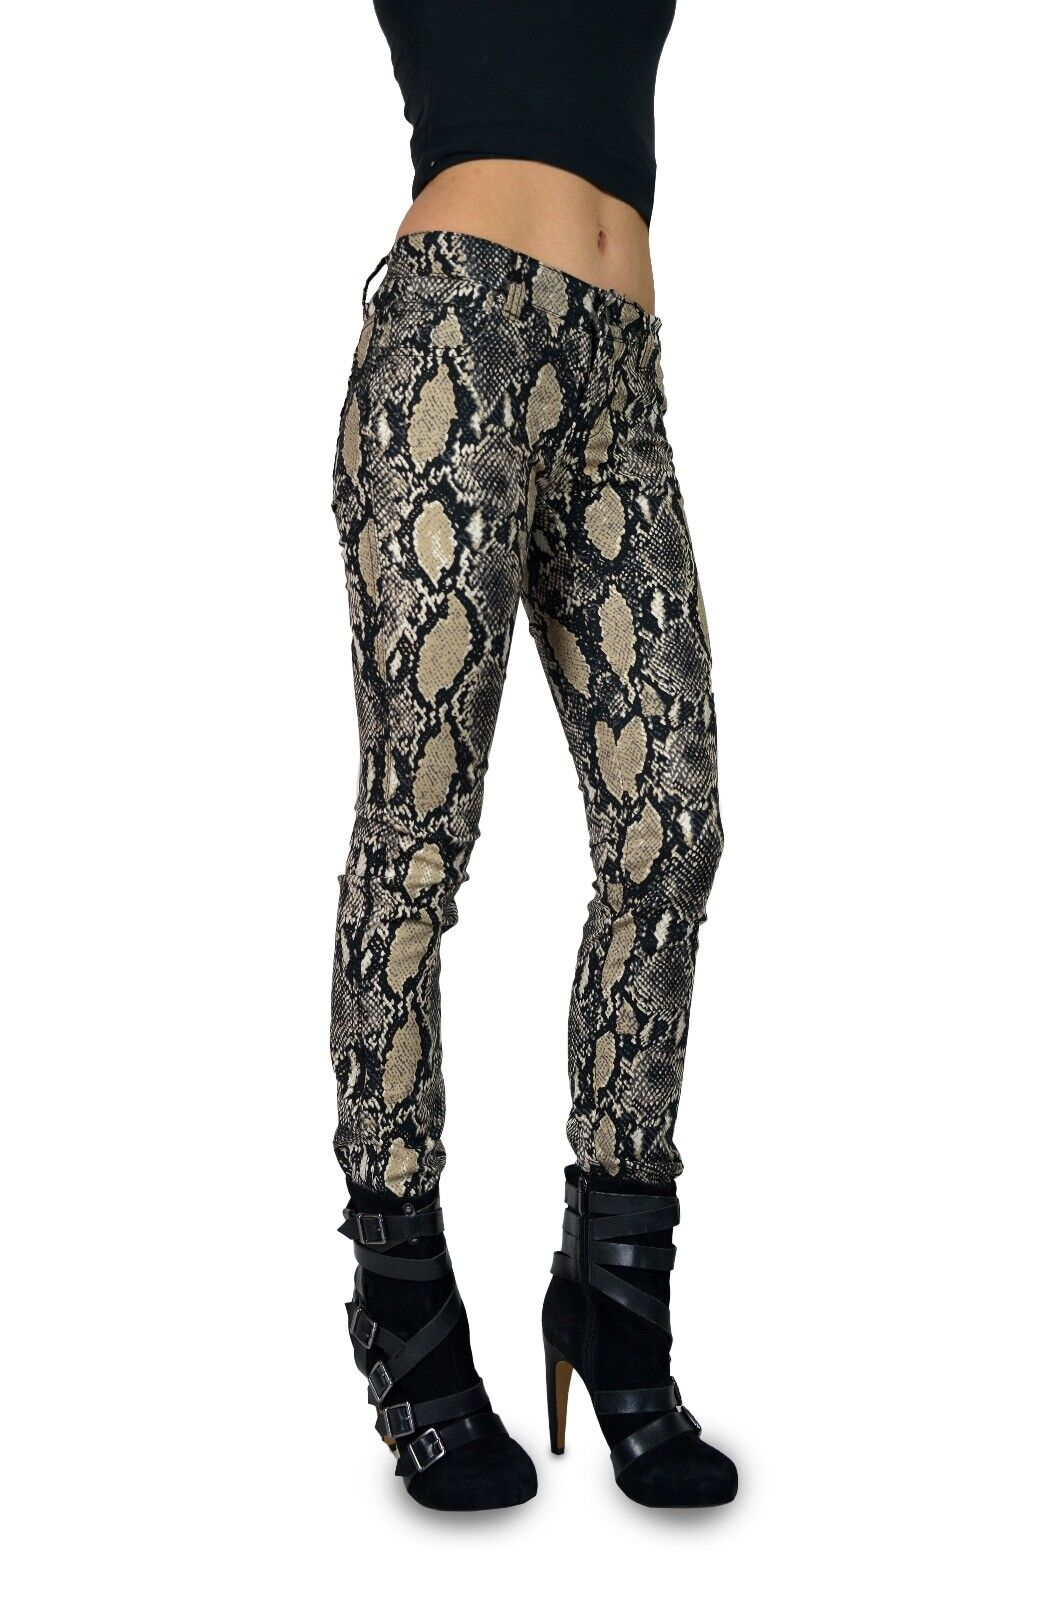 TRIPP EMO GOTH PUNK ROCK STAR NATURAL SNAKE ANIMAL METAL JEAN PANTS MOTO IL8973P Clothing, Shoes & Accessories